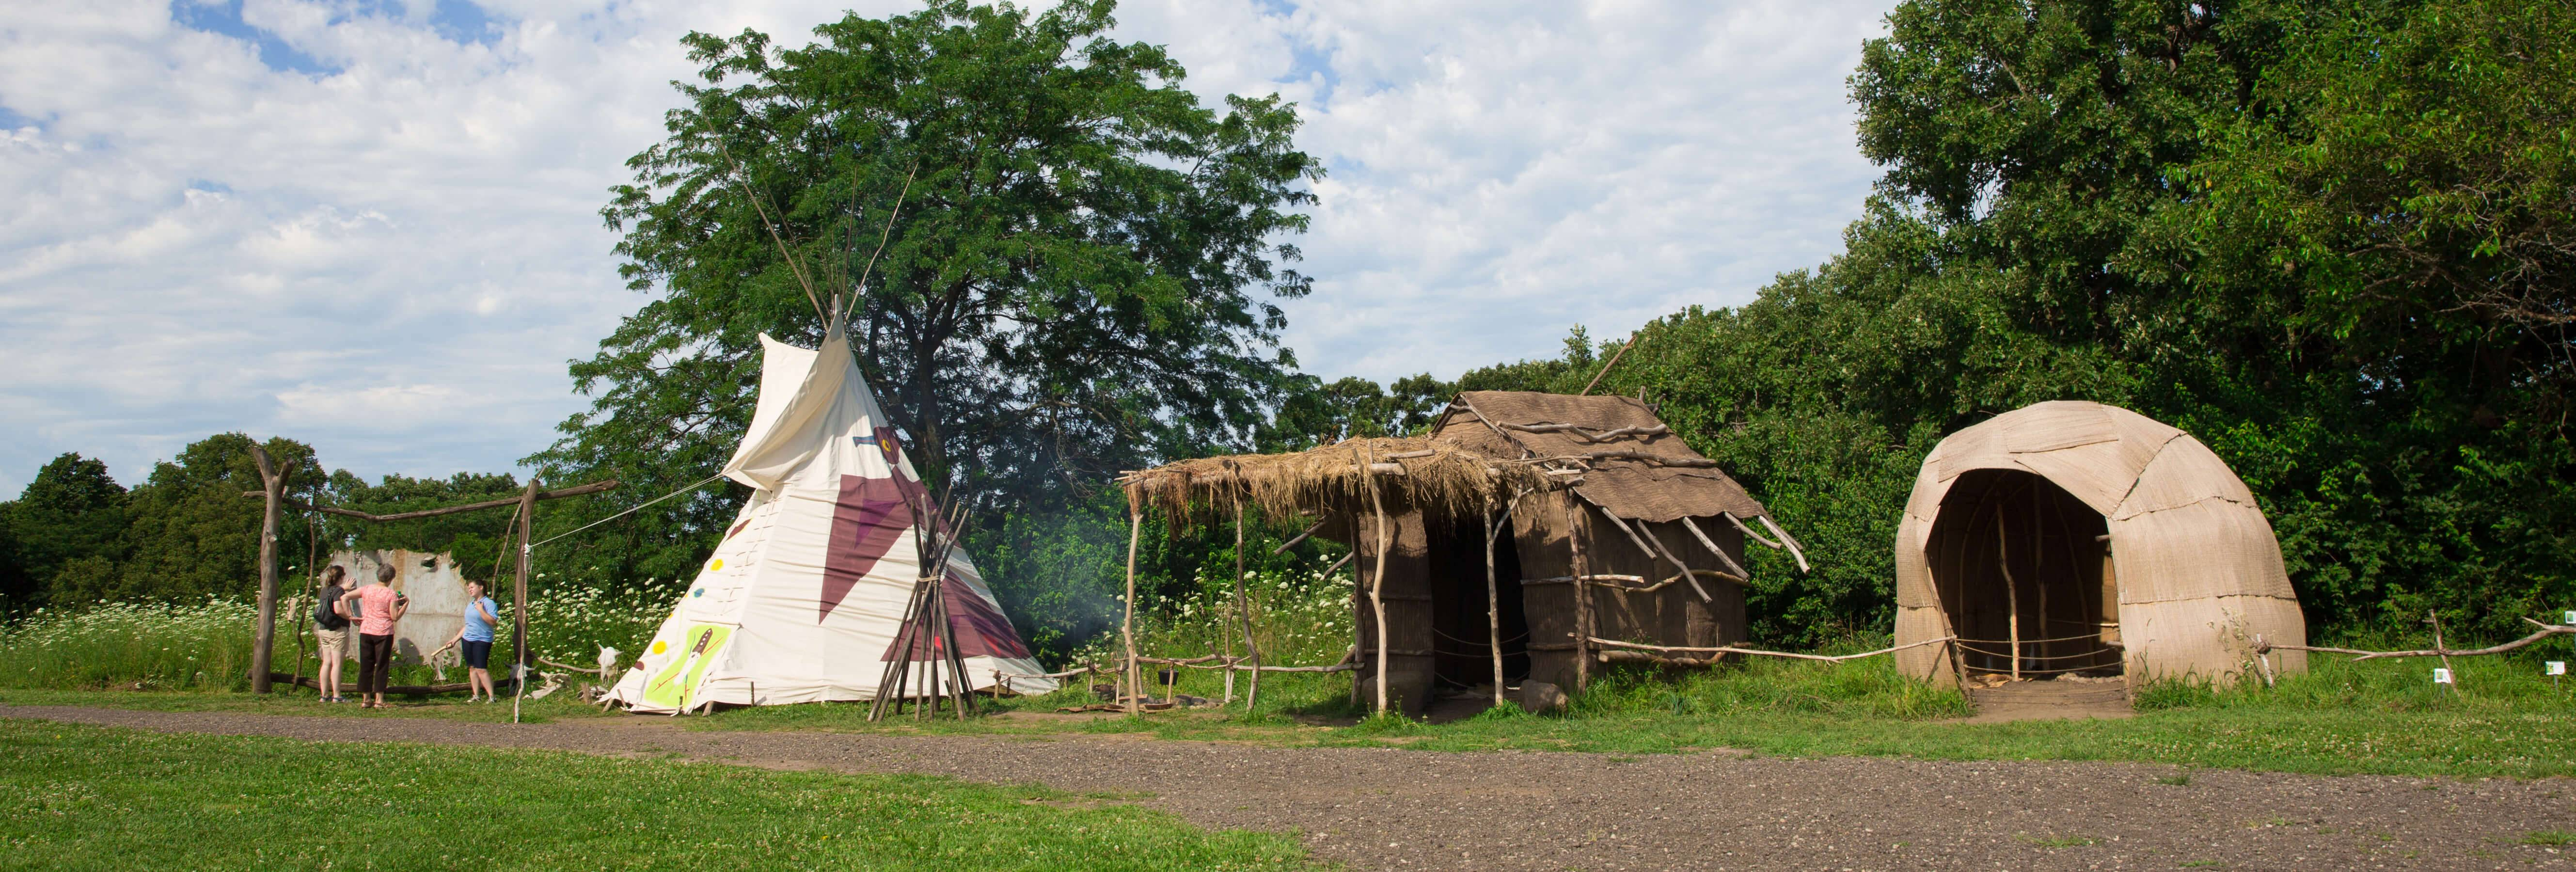 Remarkable 1700 Ioway Indian Farm Living History Farms Urbandale Best Image Libraries Weasiibadanjobscom